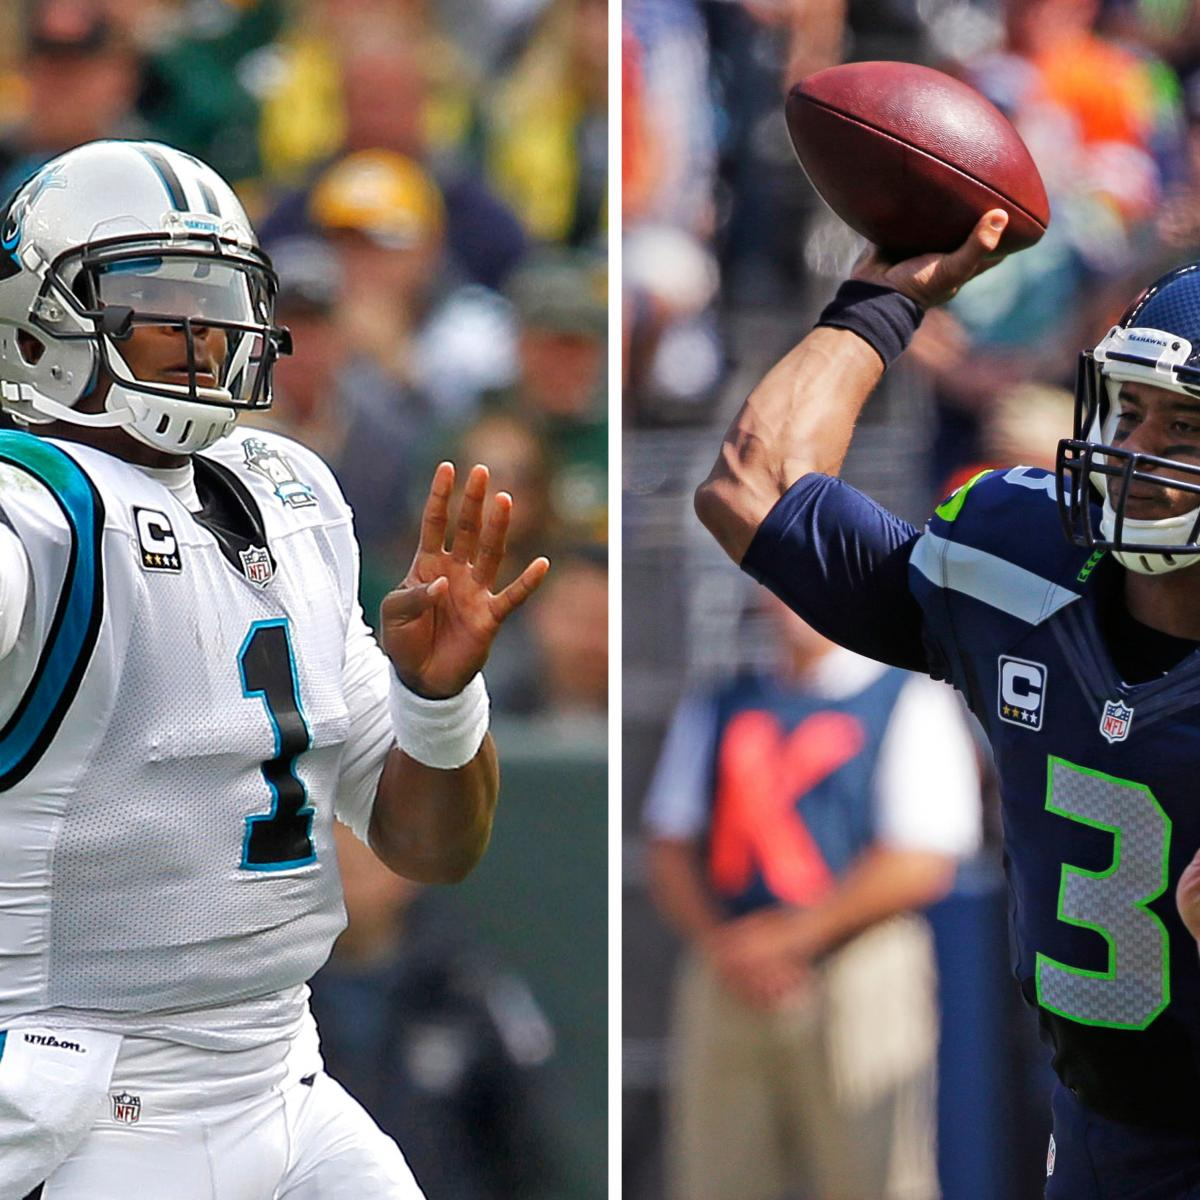 Panthers vs. Seahawks: Final Odds, Schedule, Prediction for 2015 Divisional Game | Bleacher ...